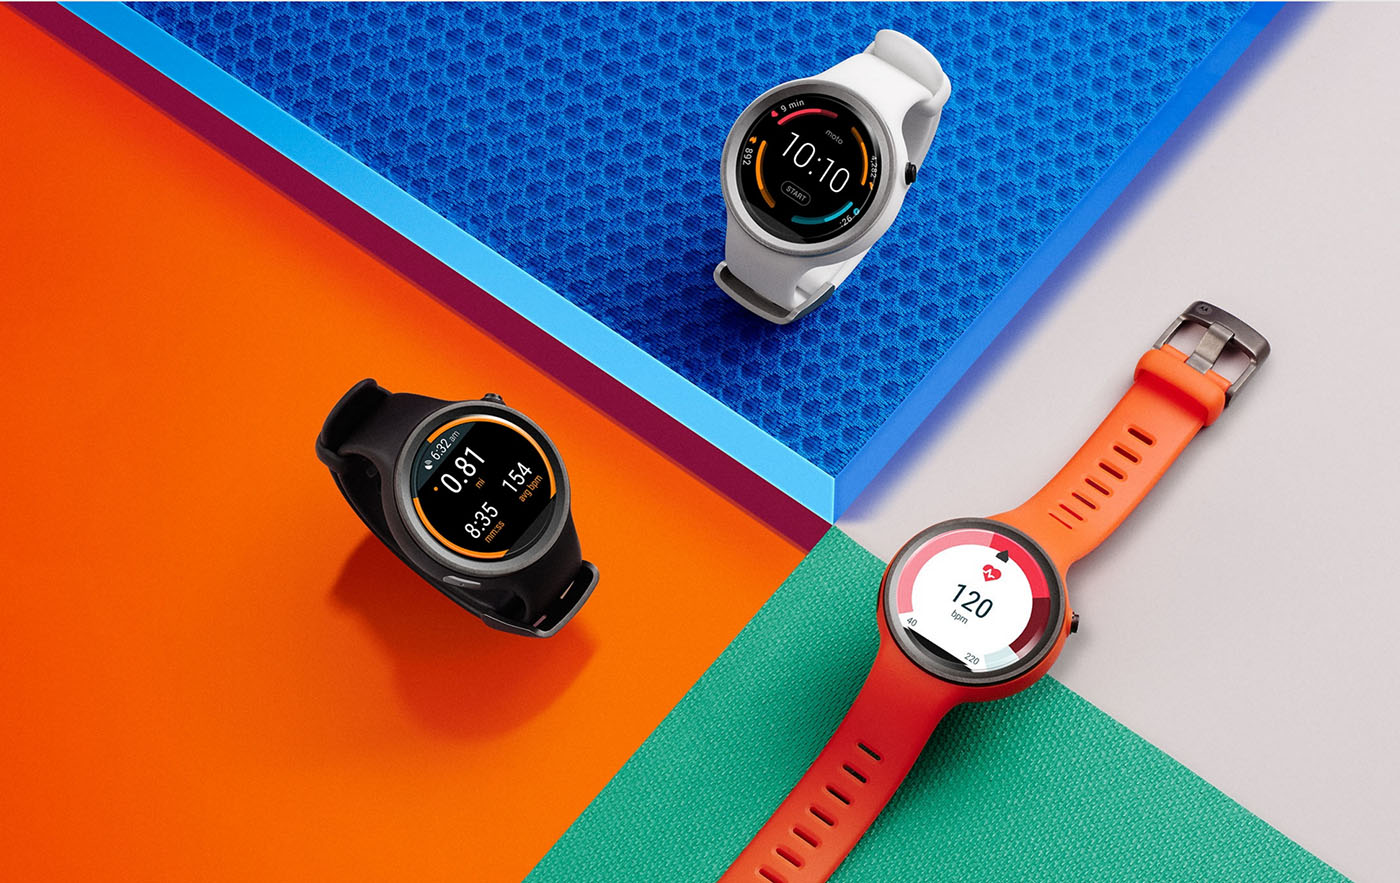 Motorola's Moto 360 Sport watch is now on sale for $299